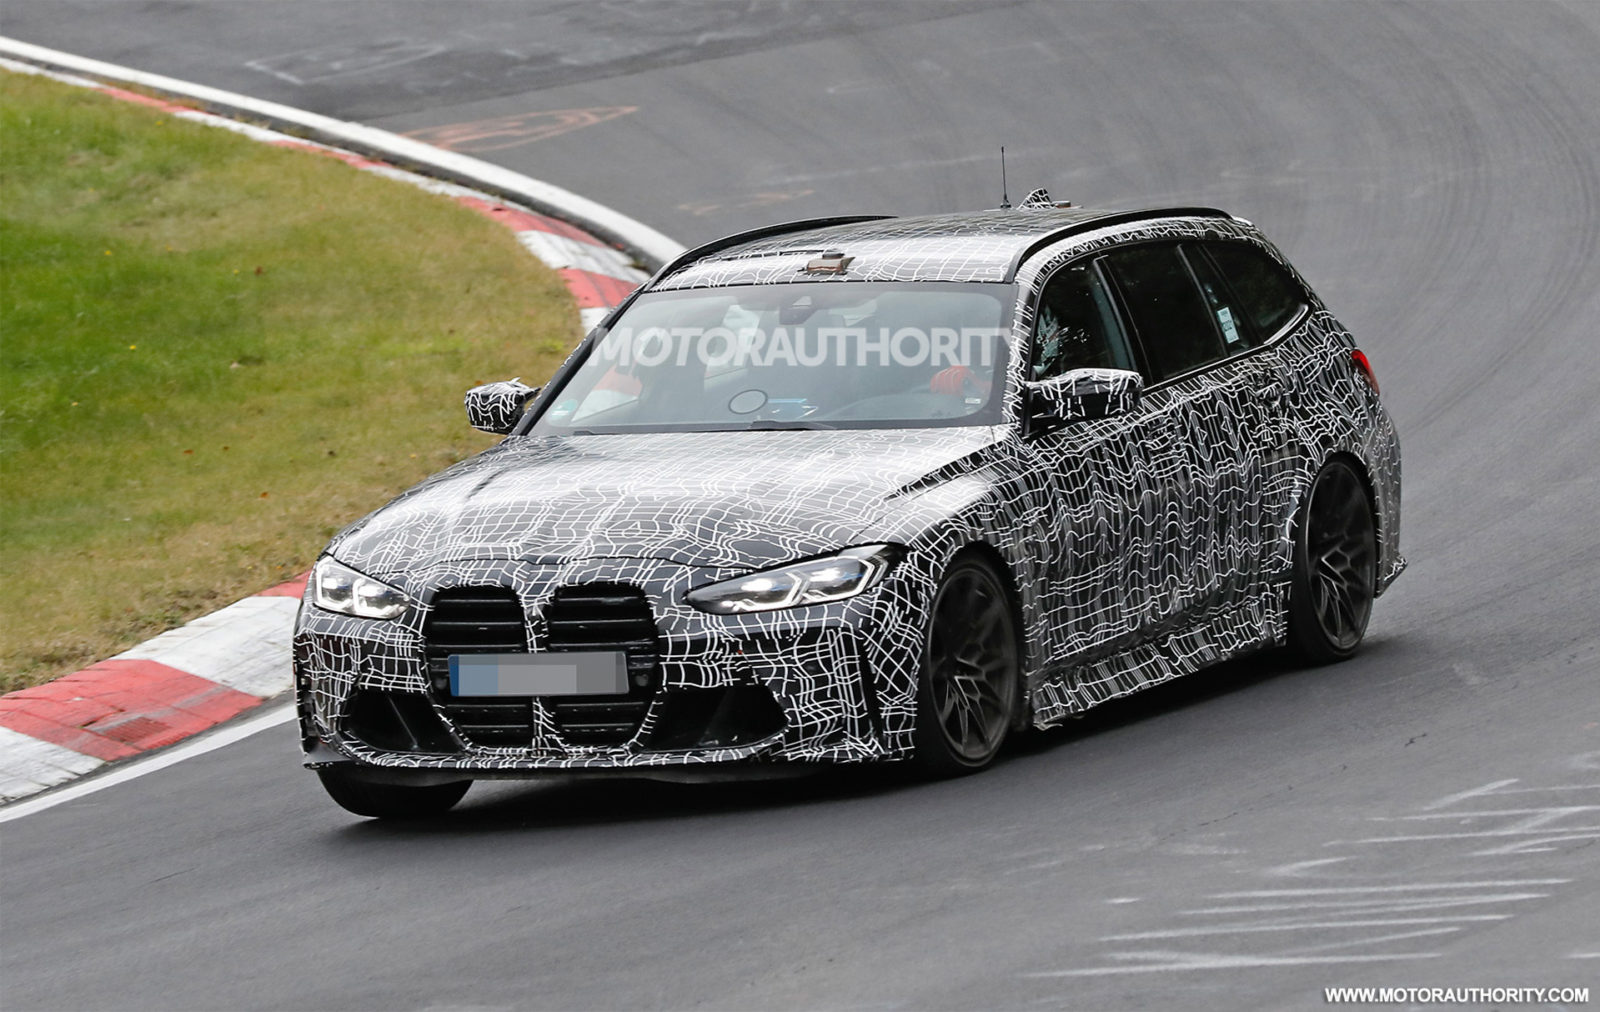 2022-bmw-m3-touring-spy-shots-and-video:-speedy-wagon-coming,-but-not-to-us